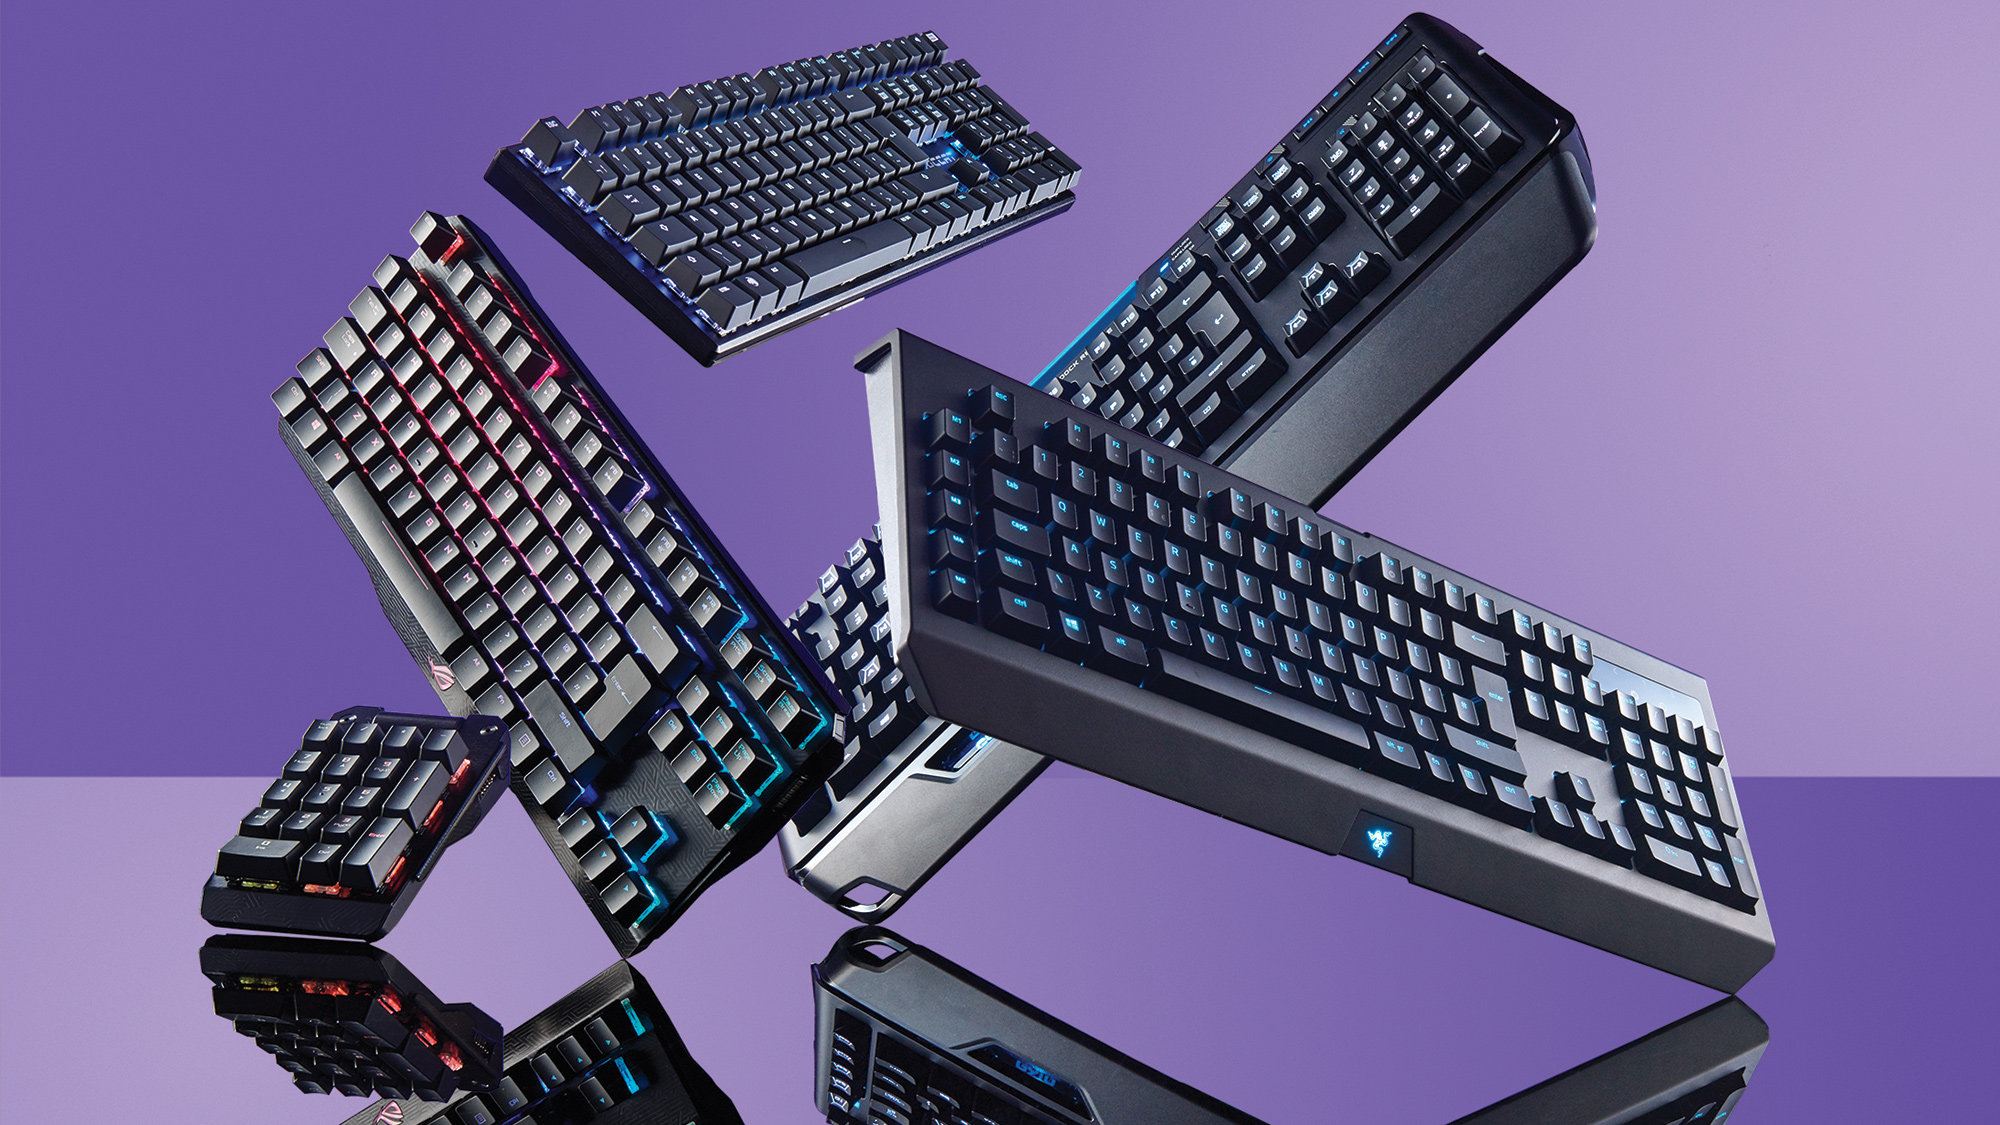 Best gaming keyboard 2020: the best gaming keyboards we've tested